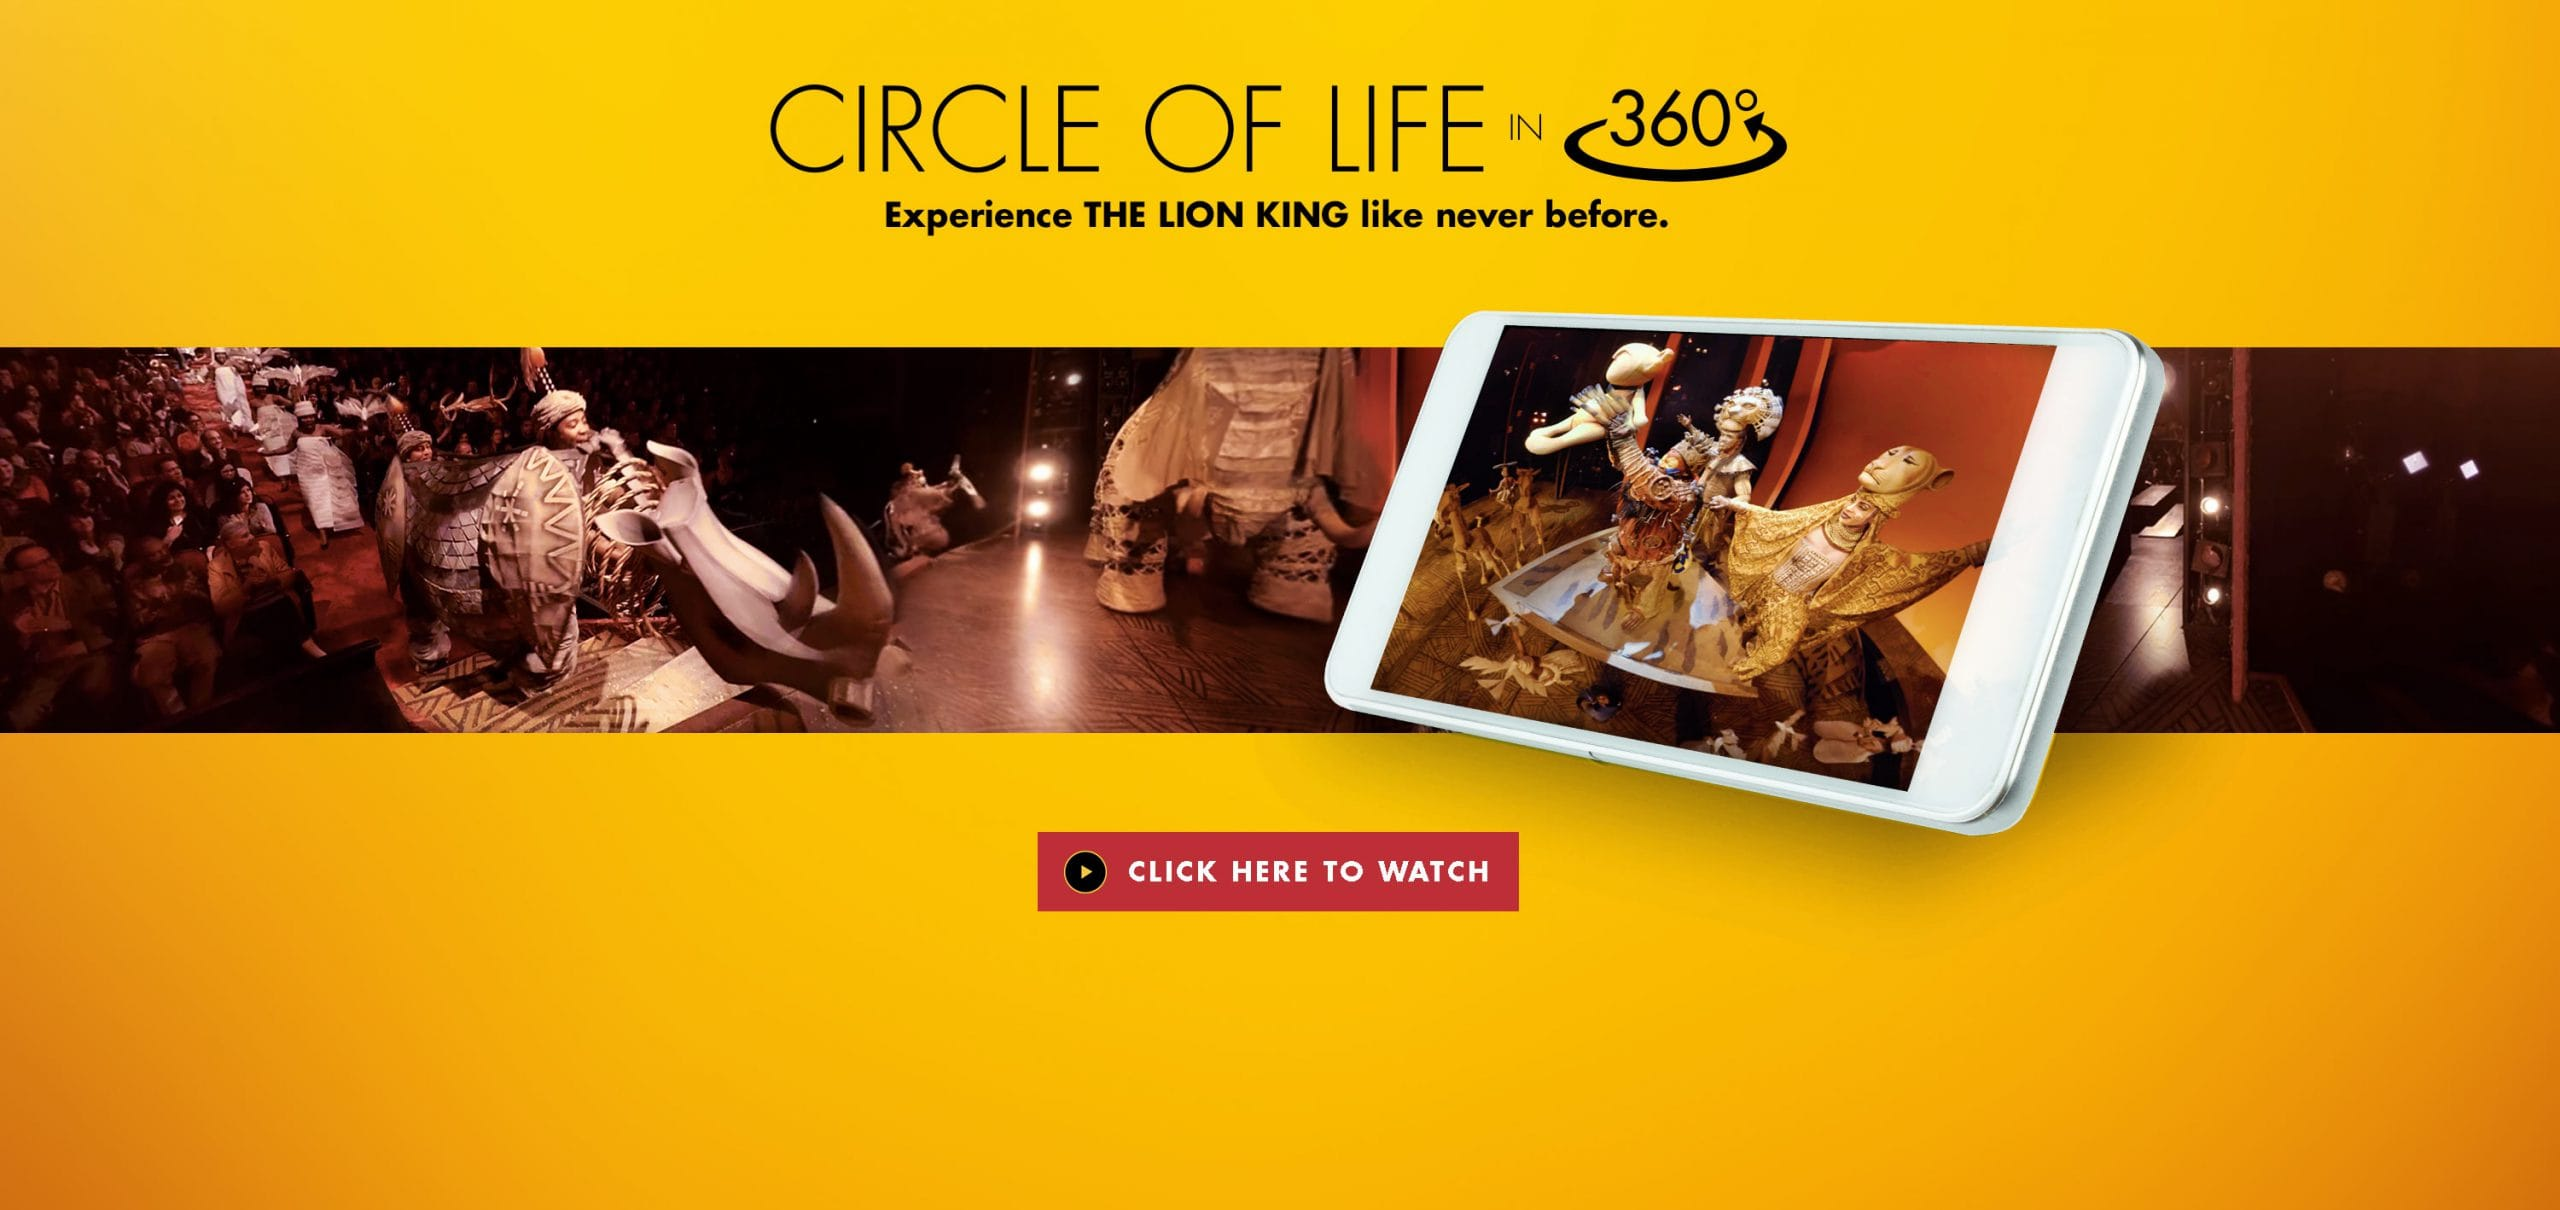 Circle of Life in 360 - Experience THE LION KING like never before - WATCH IT NOW